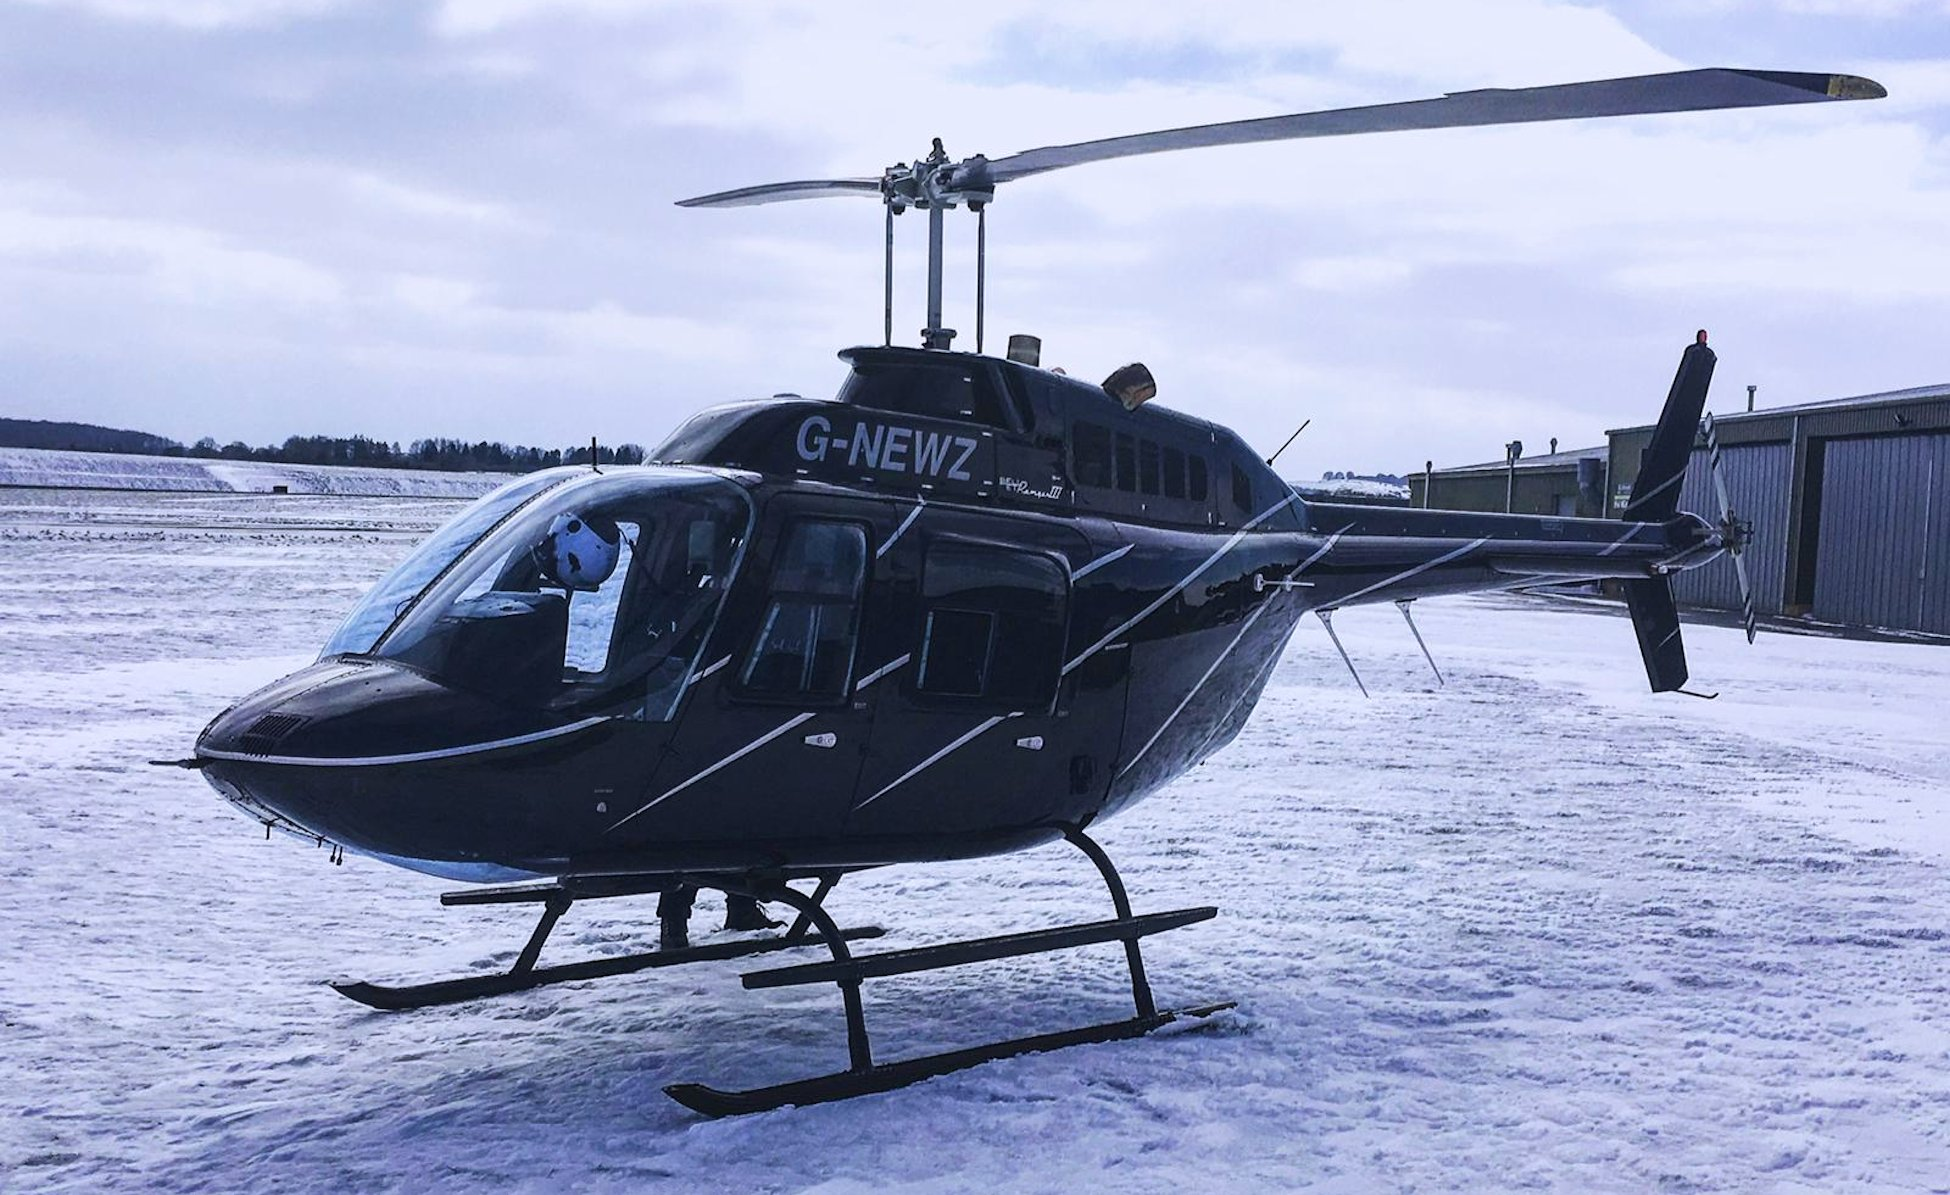 Commercial Helicopter Pilot Training CPLH Licence Courses and Helicopter Careers